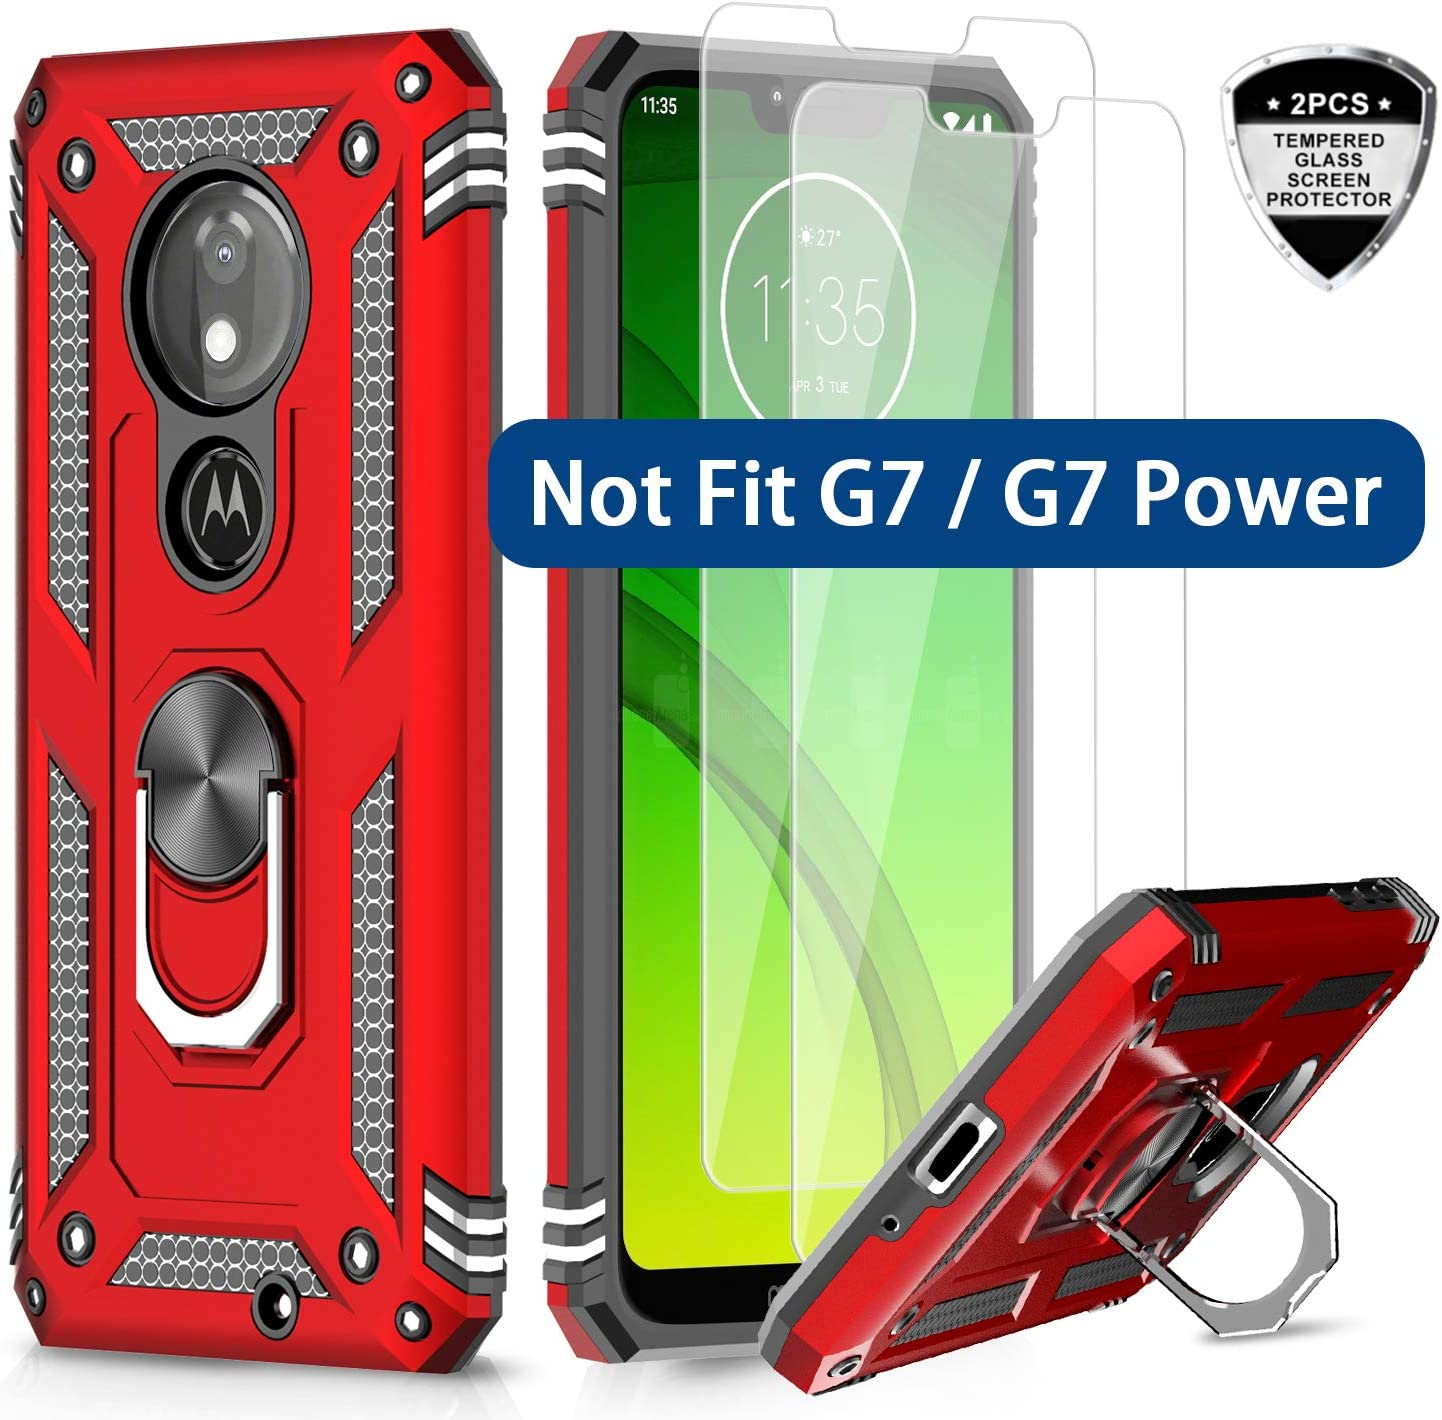 LeYi Moto G7 Play Case (Not Fit Moto G7) with Tempered Glass Screen Protector [2 Pack], Military Grade Defender Phone Case with Magnetic Car Mount Kickstand for Moto G7 Play, Red